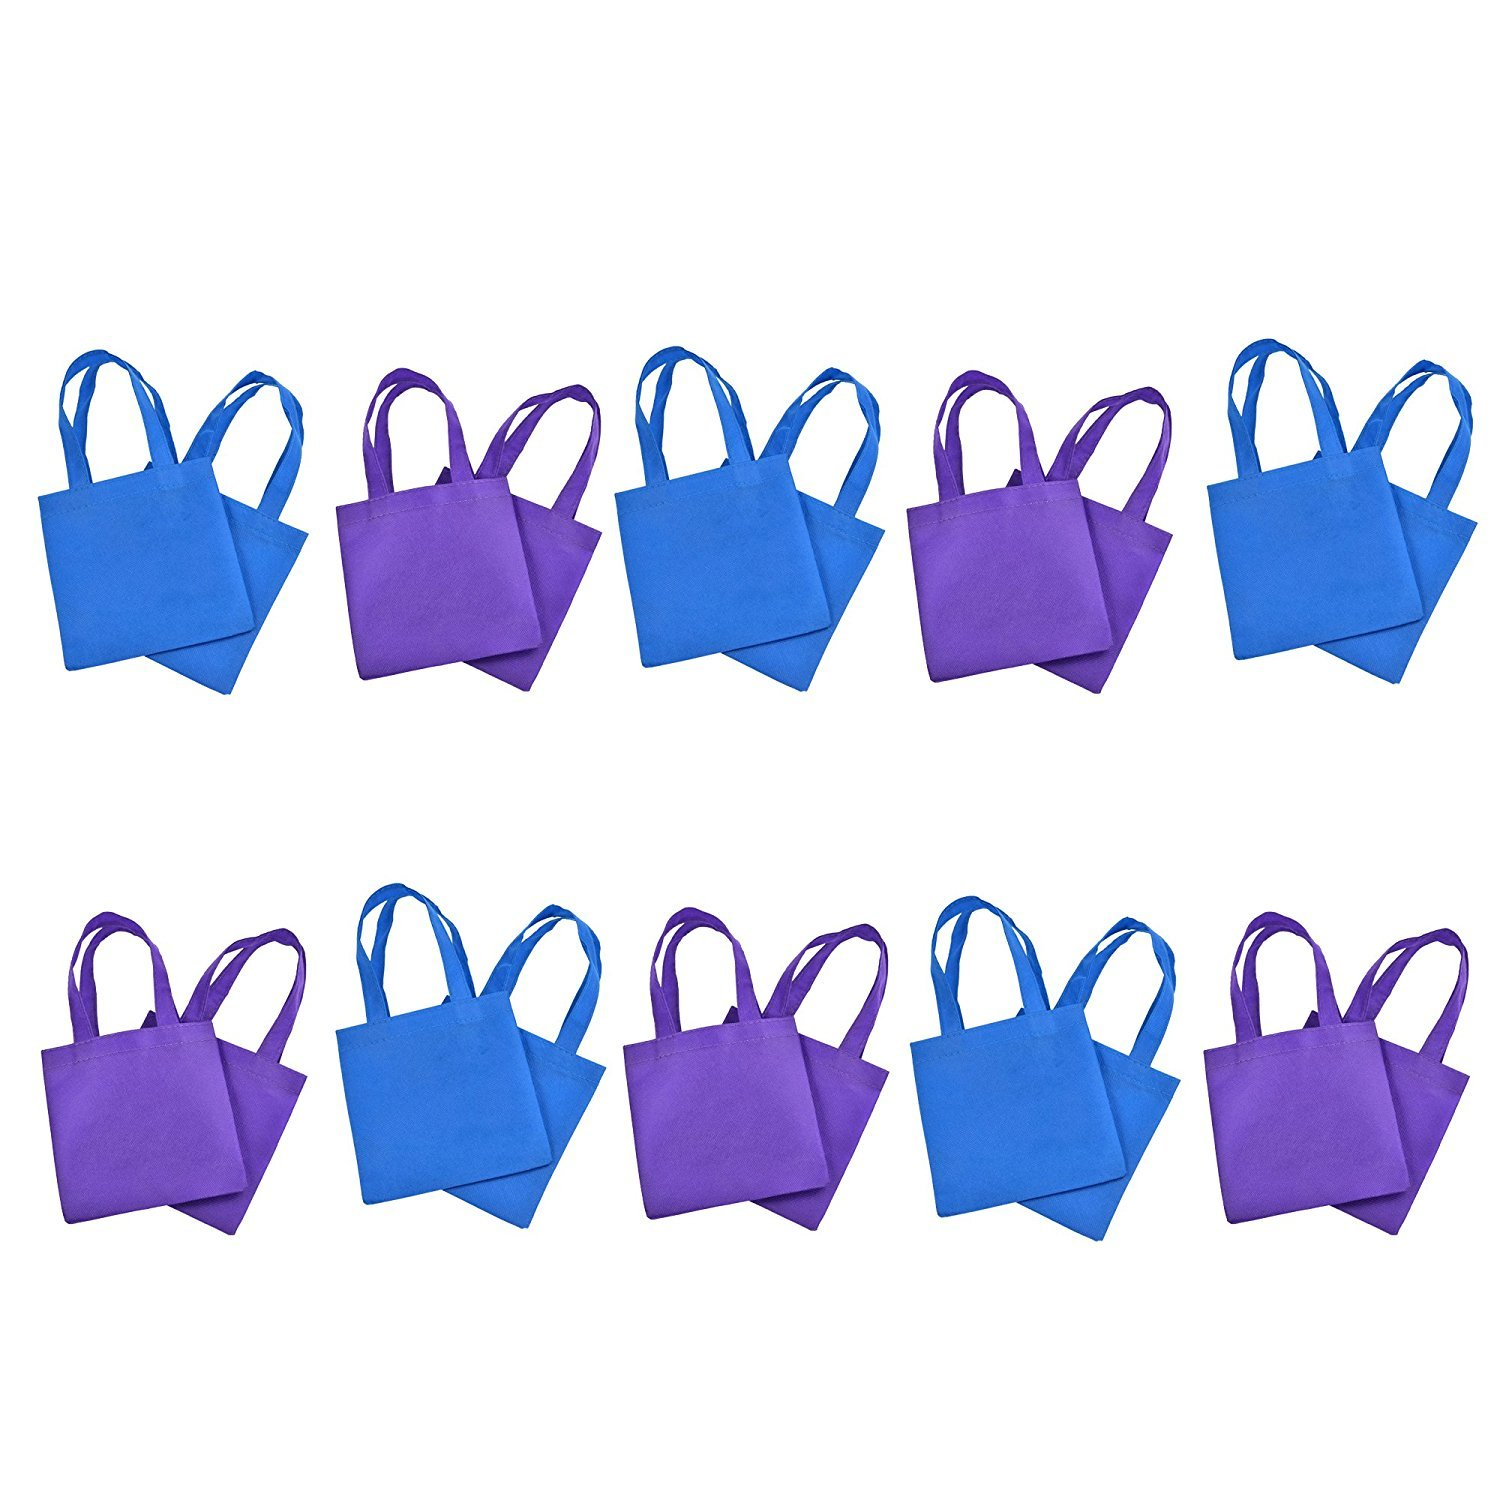 BCP 9-inch 20pcs Small不織布再利用可能なKids Carrying /ショッピング/ Grocery Tote Bag for Wedding Favor /ギフト/パーティー B00WHSVG5G